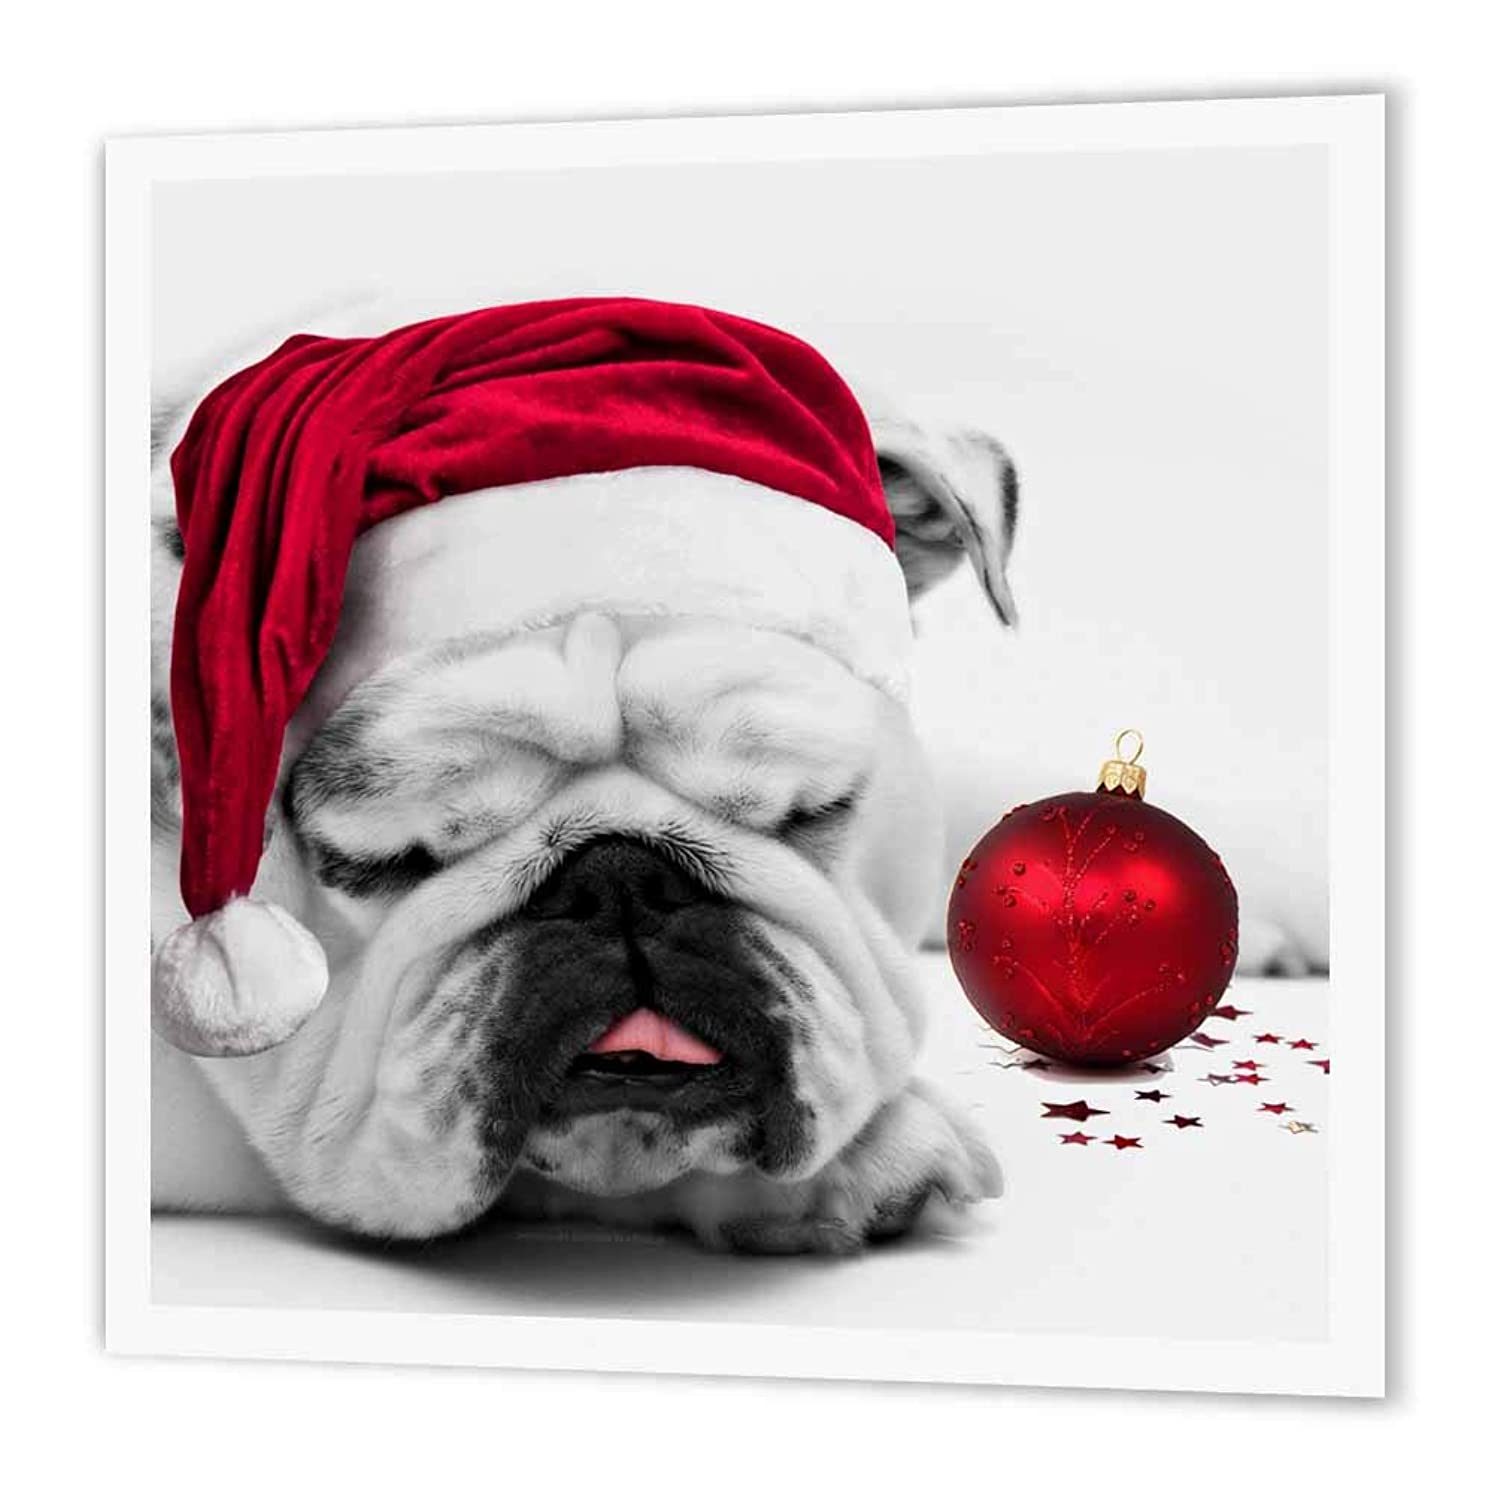 3dRose ht_62826_2 Sleeping Bulldog in Santa Hat Christmas Photo Courtesy of Esther Matheus-Iron on Heat Transfer Paper for White Material, 6 by 6-Inch